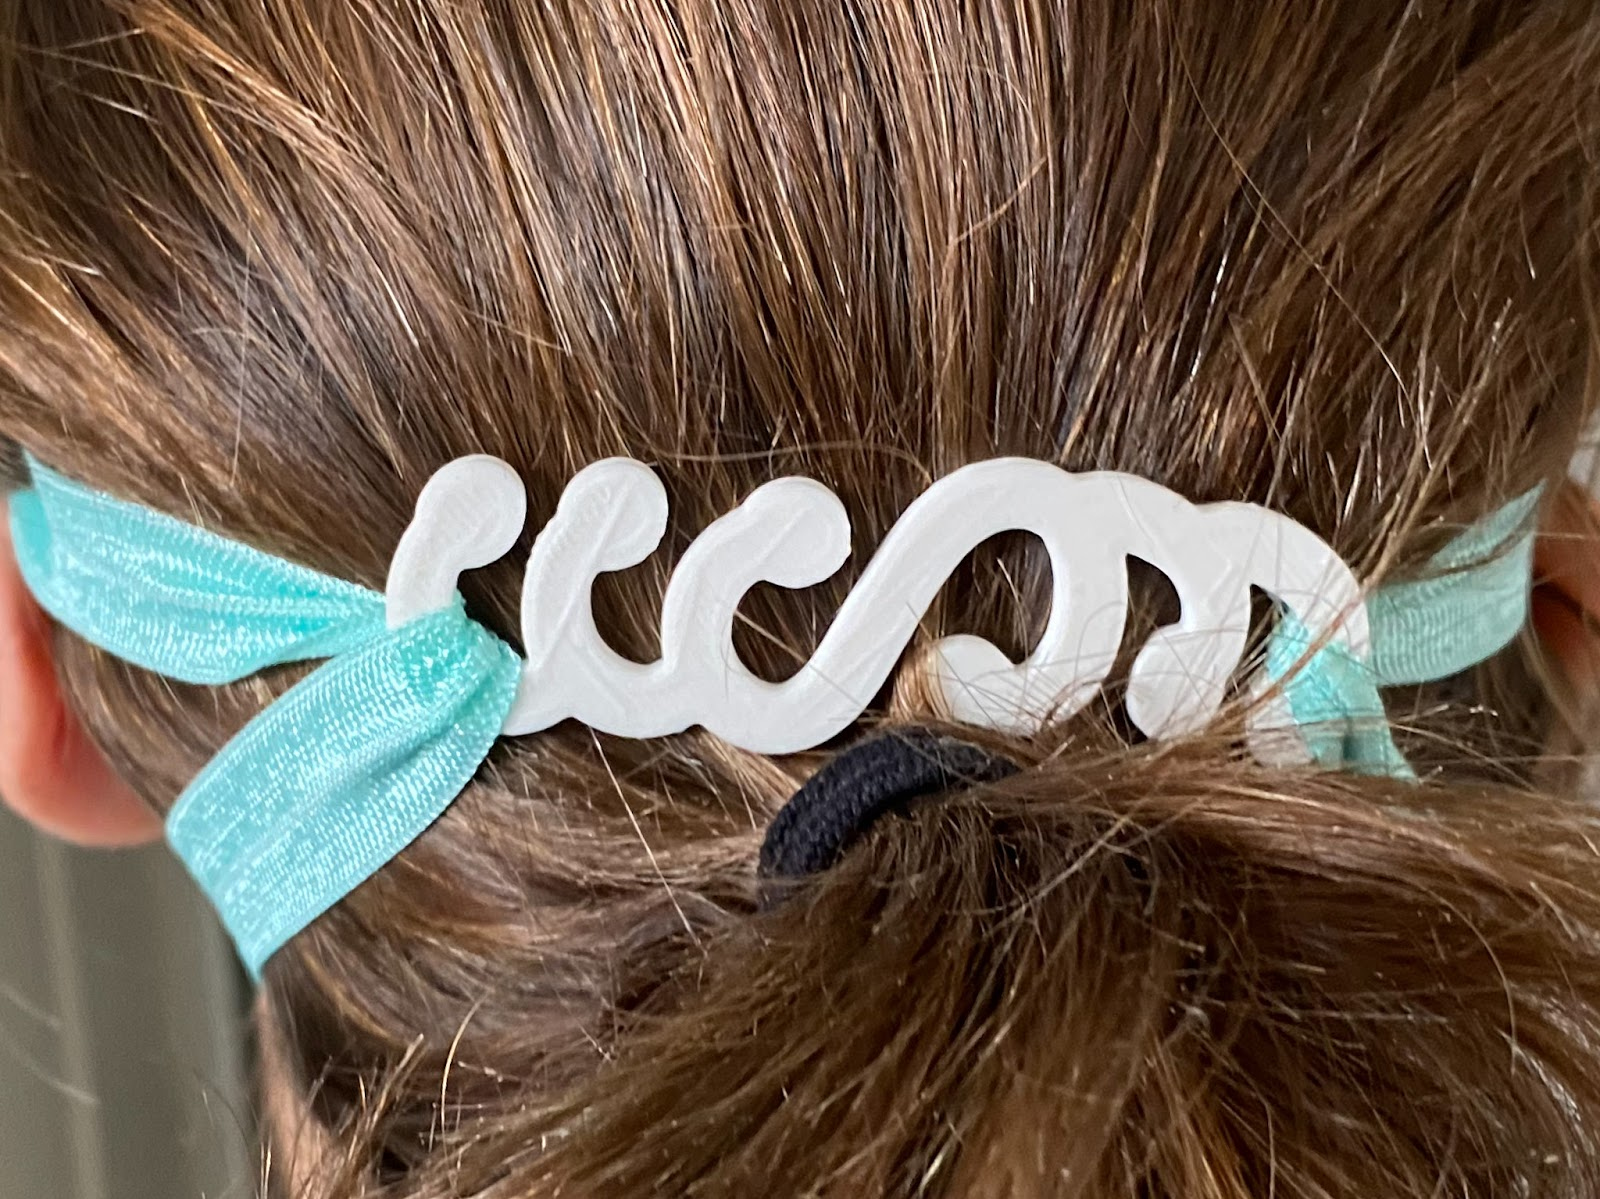 Free Face Mask Clip Ear Saver Design 3D Print File And